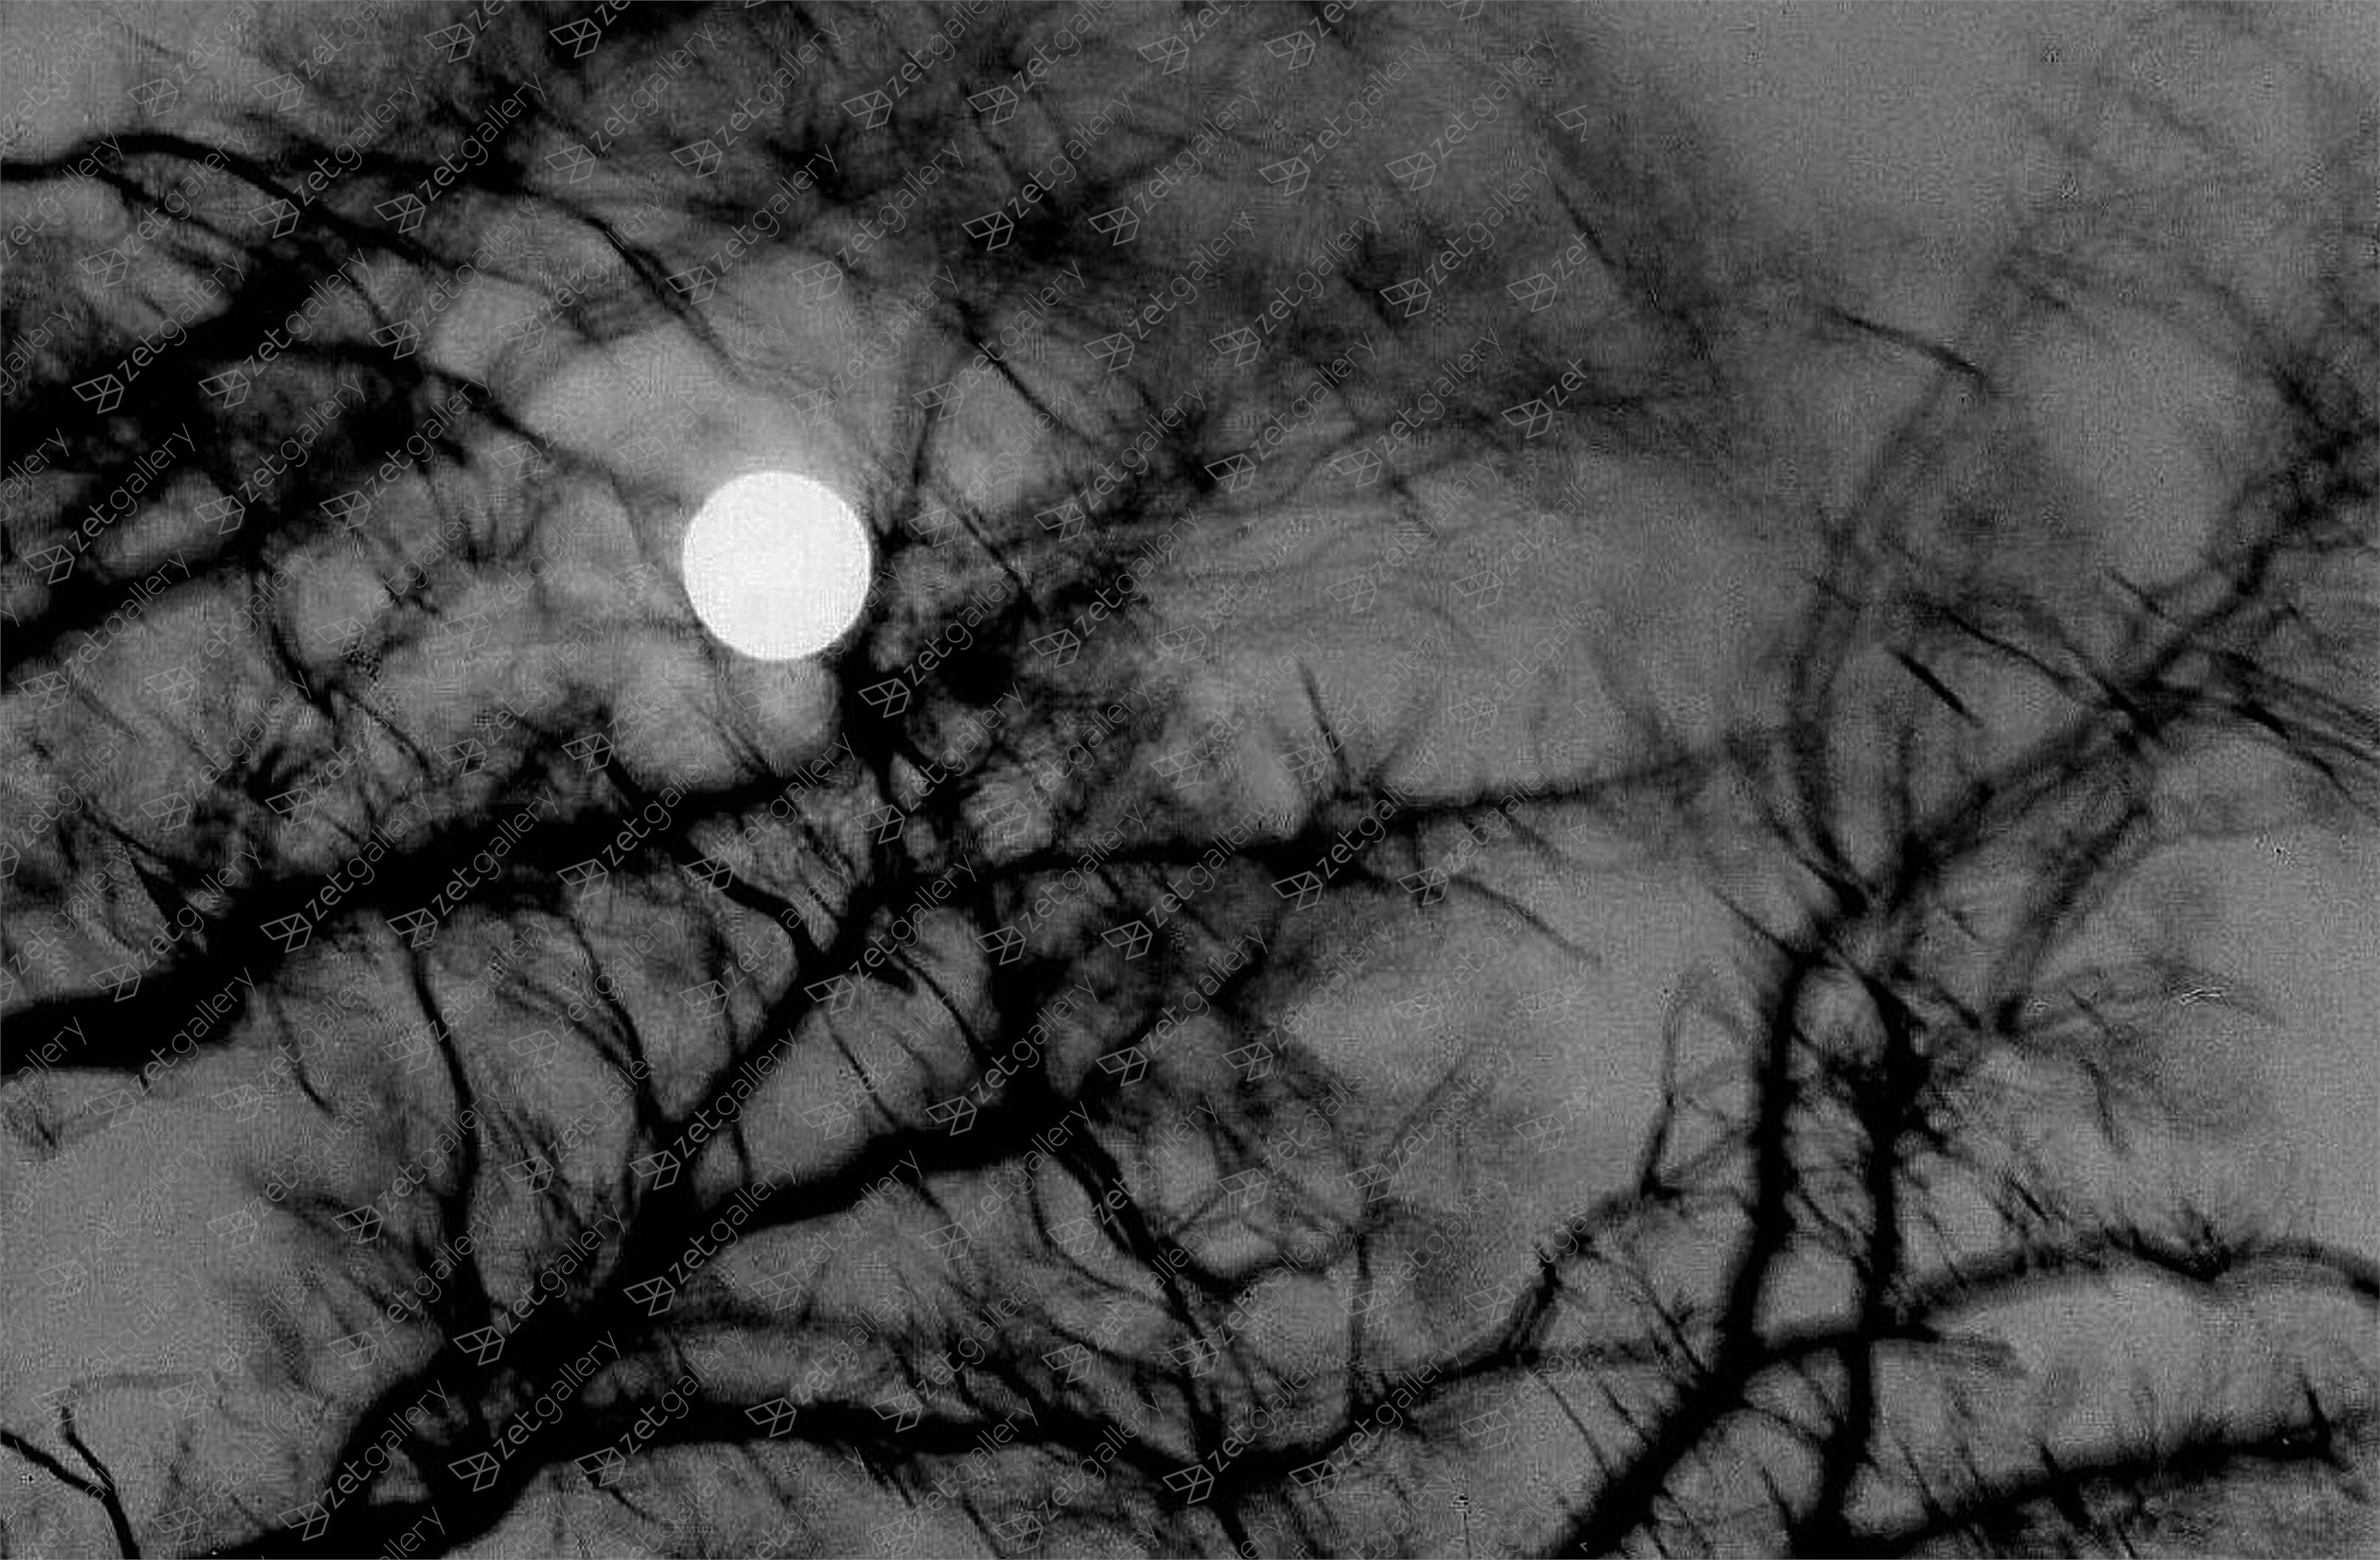 Full-Moon-Night, original B&W Analog Photography by Heinz Baade